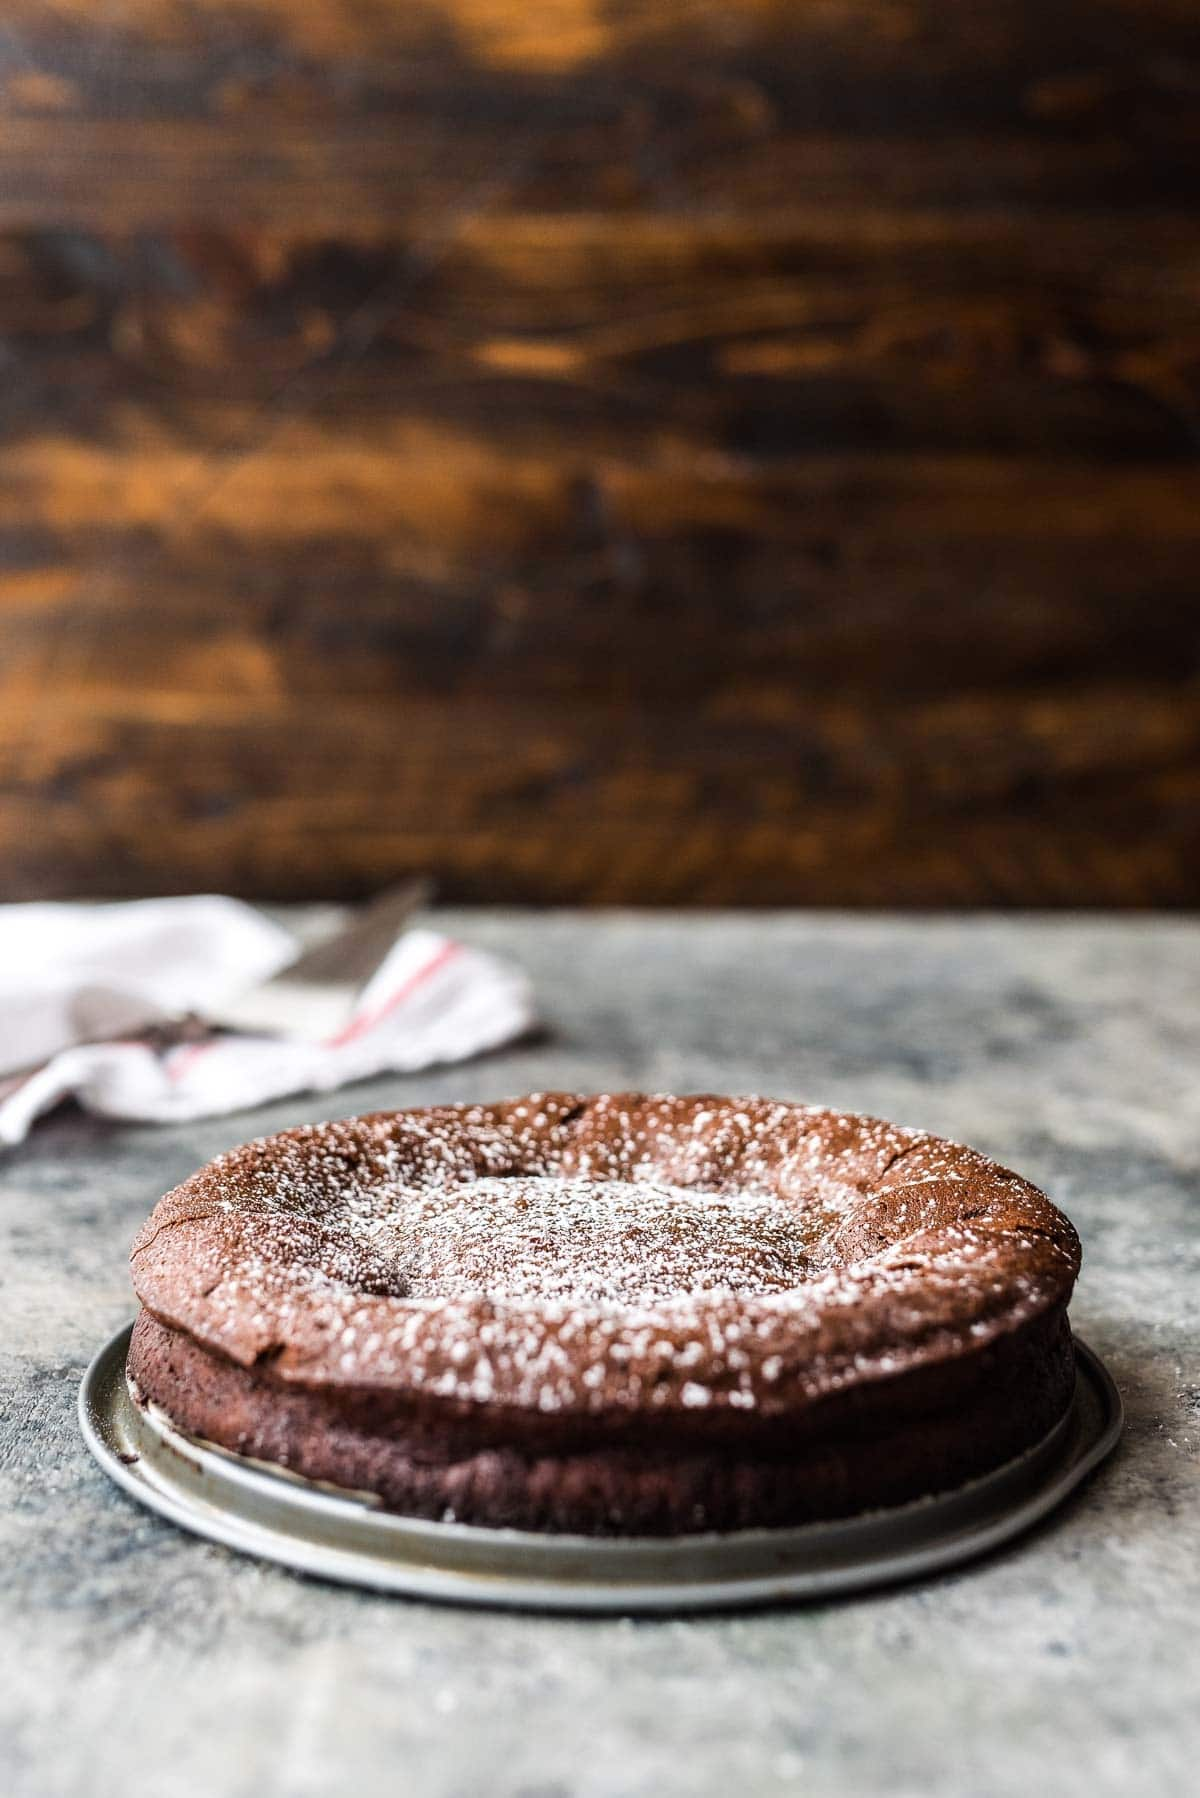 Flourless Chocolate Torte | The Best Chocolate Torte Recipe!